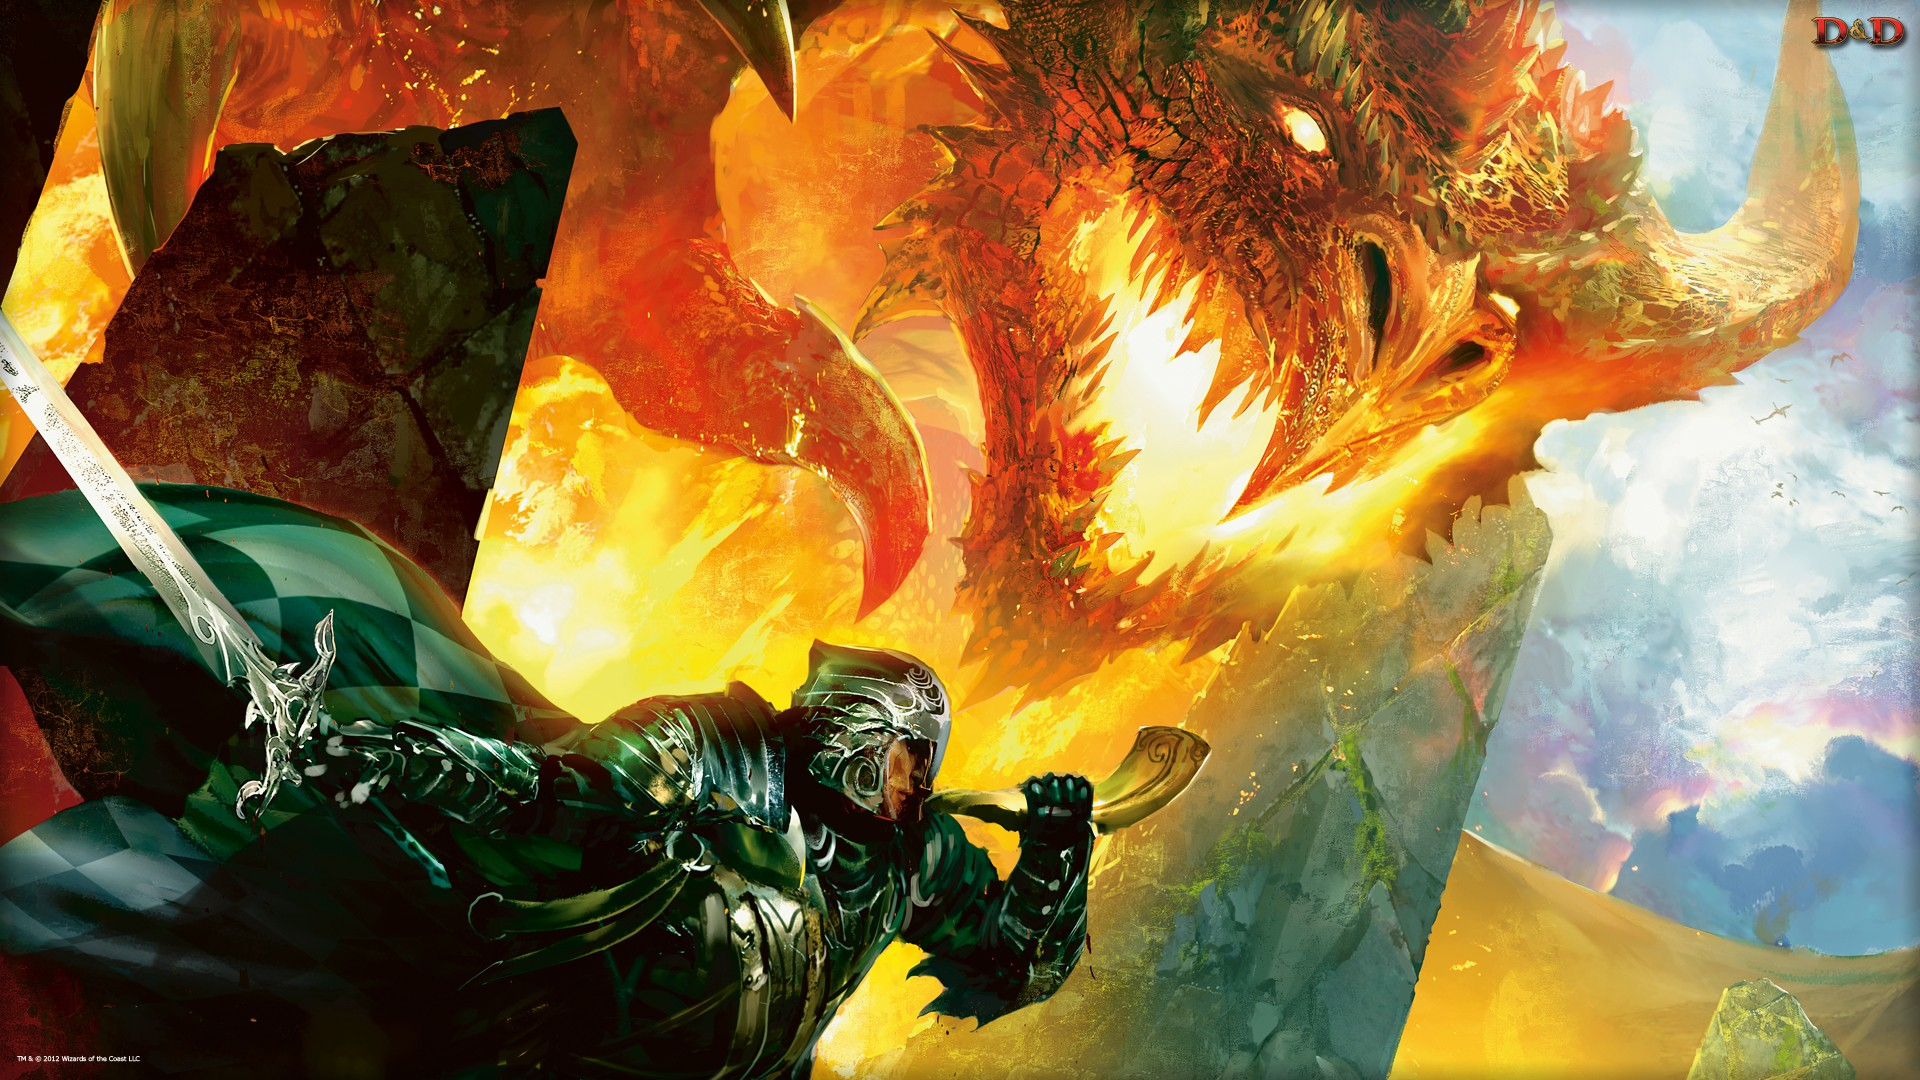 Dnd Wallpaper Download Free Cool Full Hd Wallpapers For